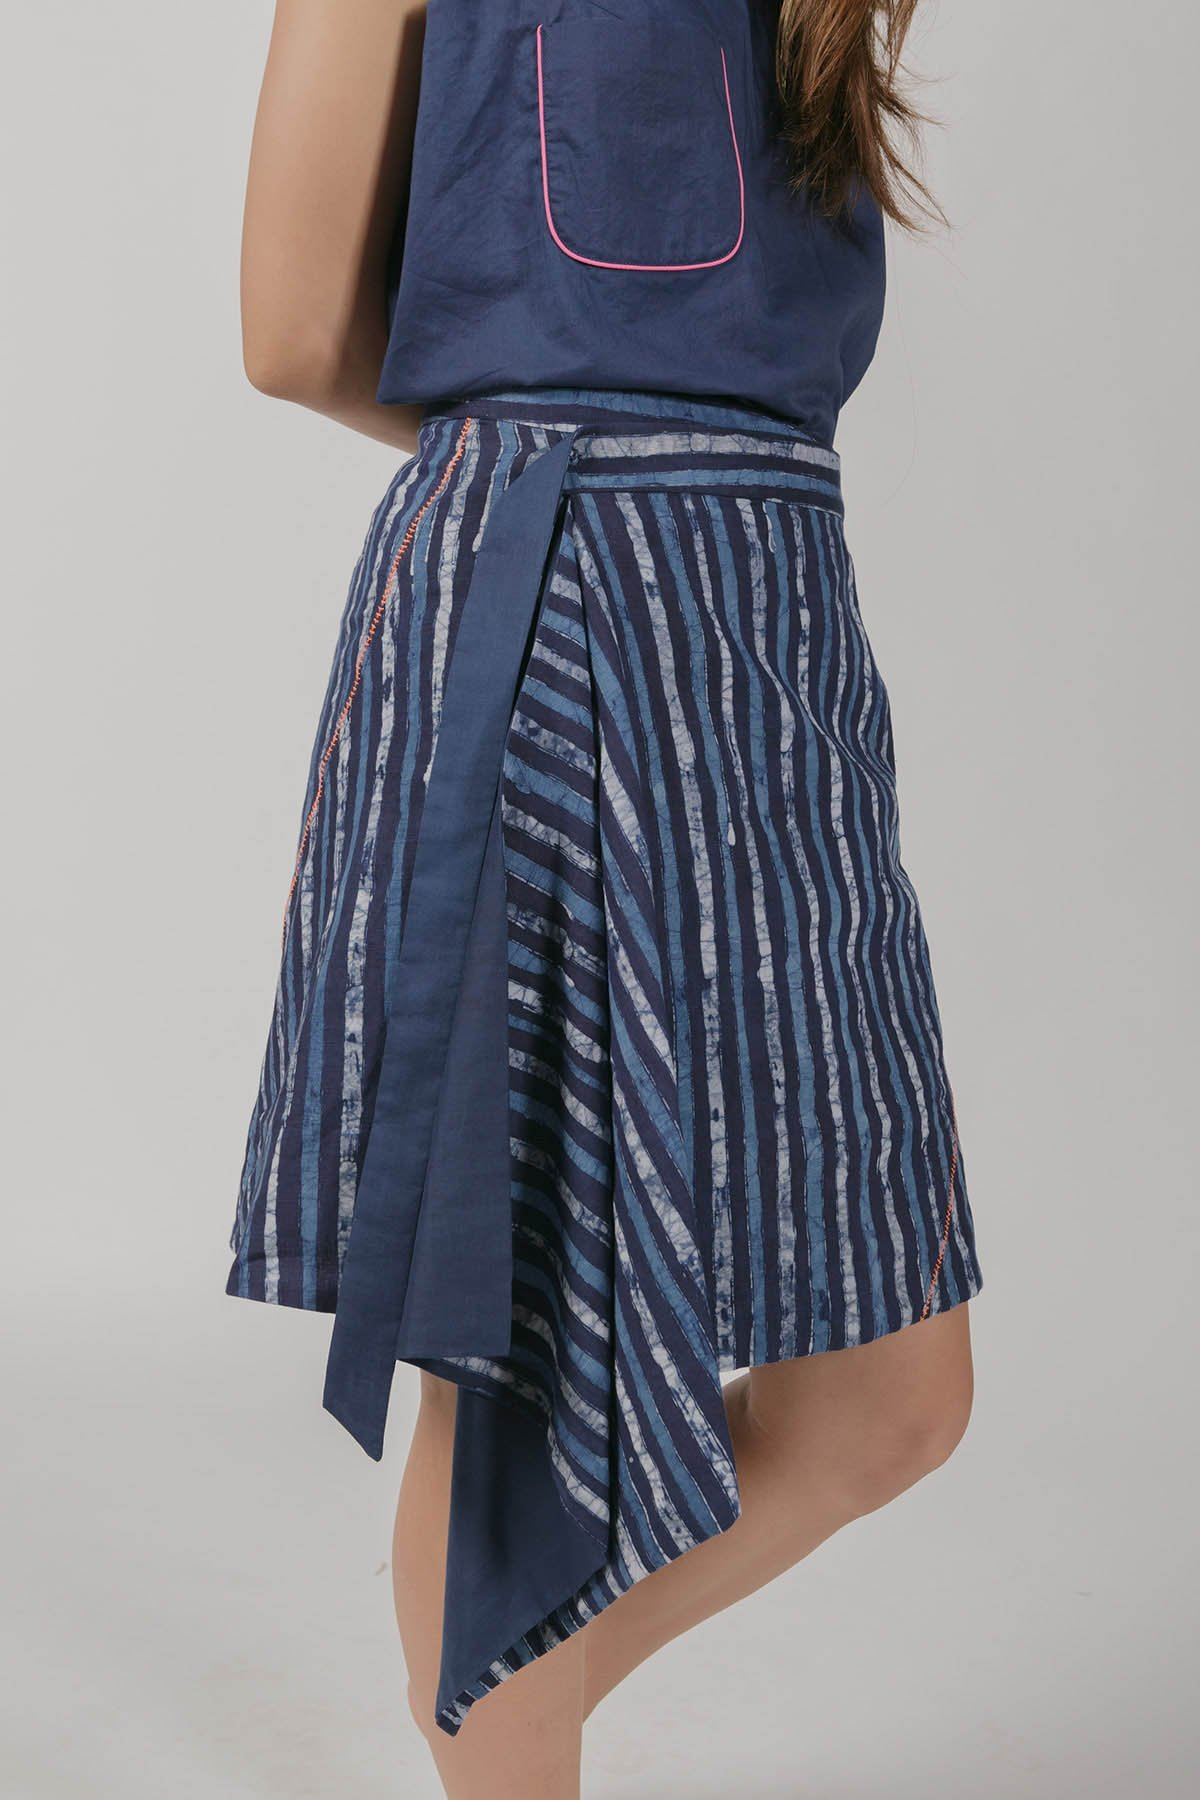 This is a Reversible Wrapped Skirt by Kilomet 109 - Phieu Collection 2017